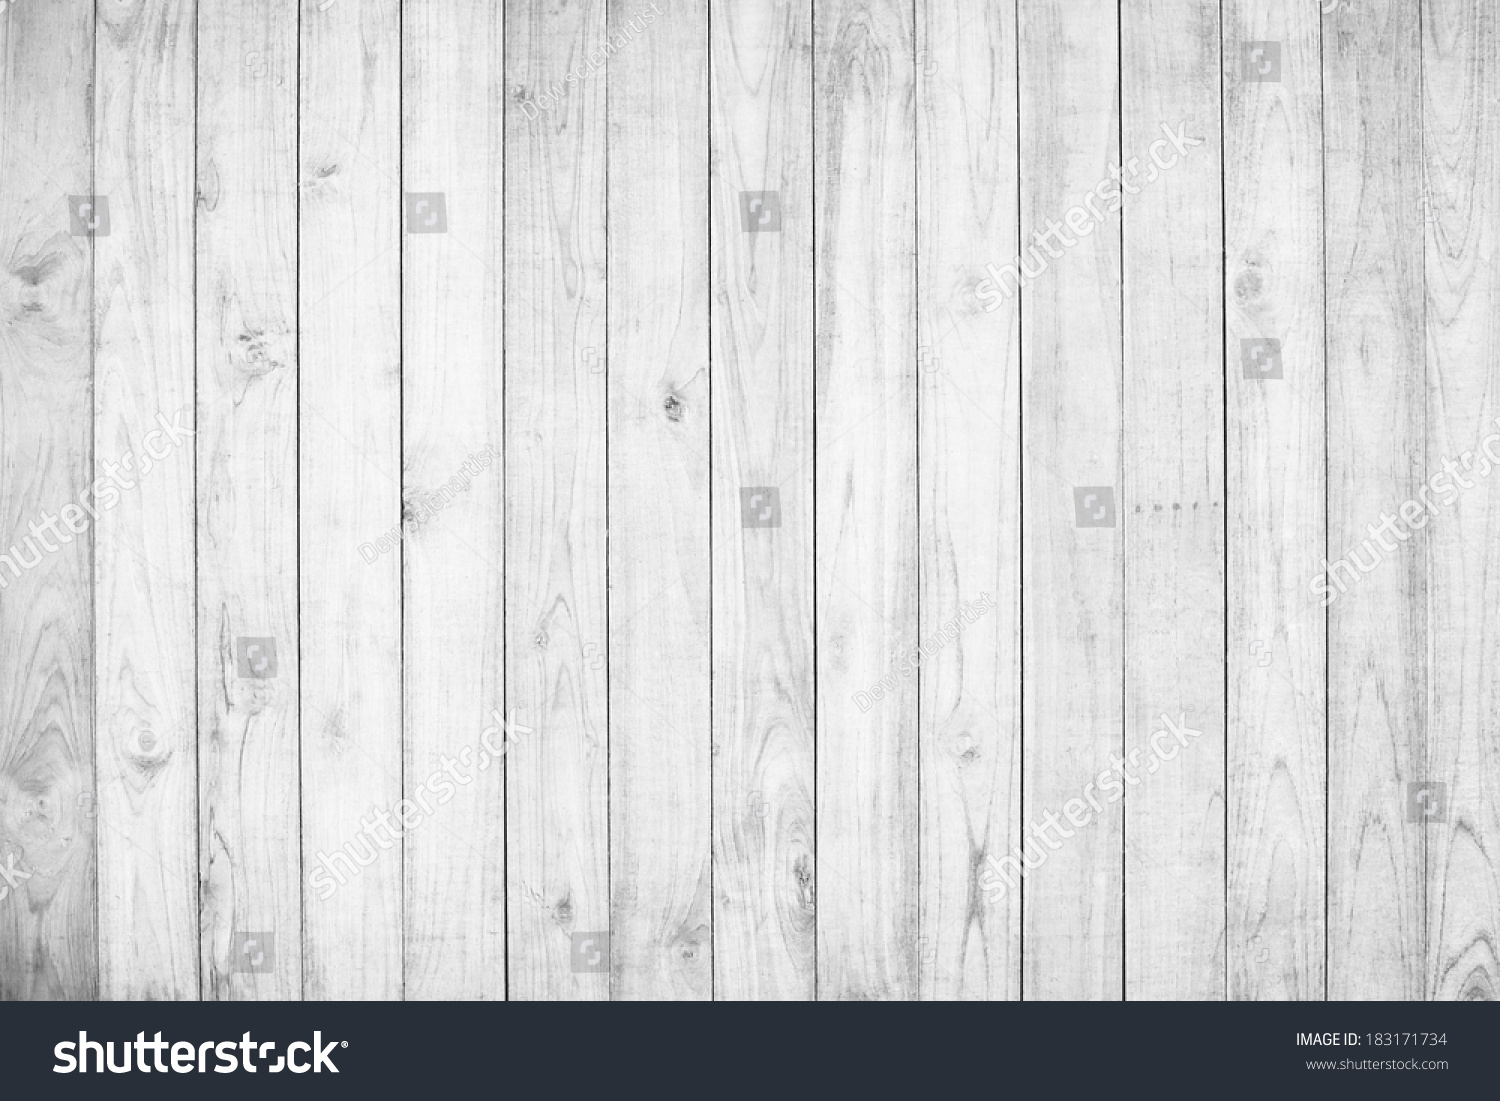 White Wood Texture Background Stock Photo 183171734 Shutterstock